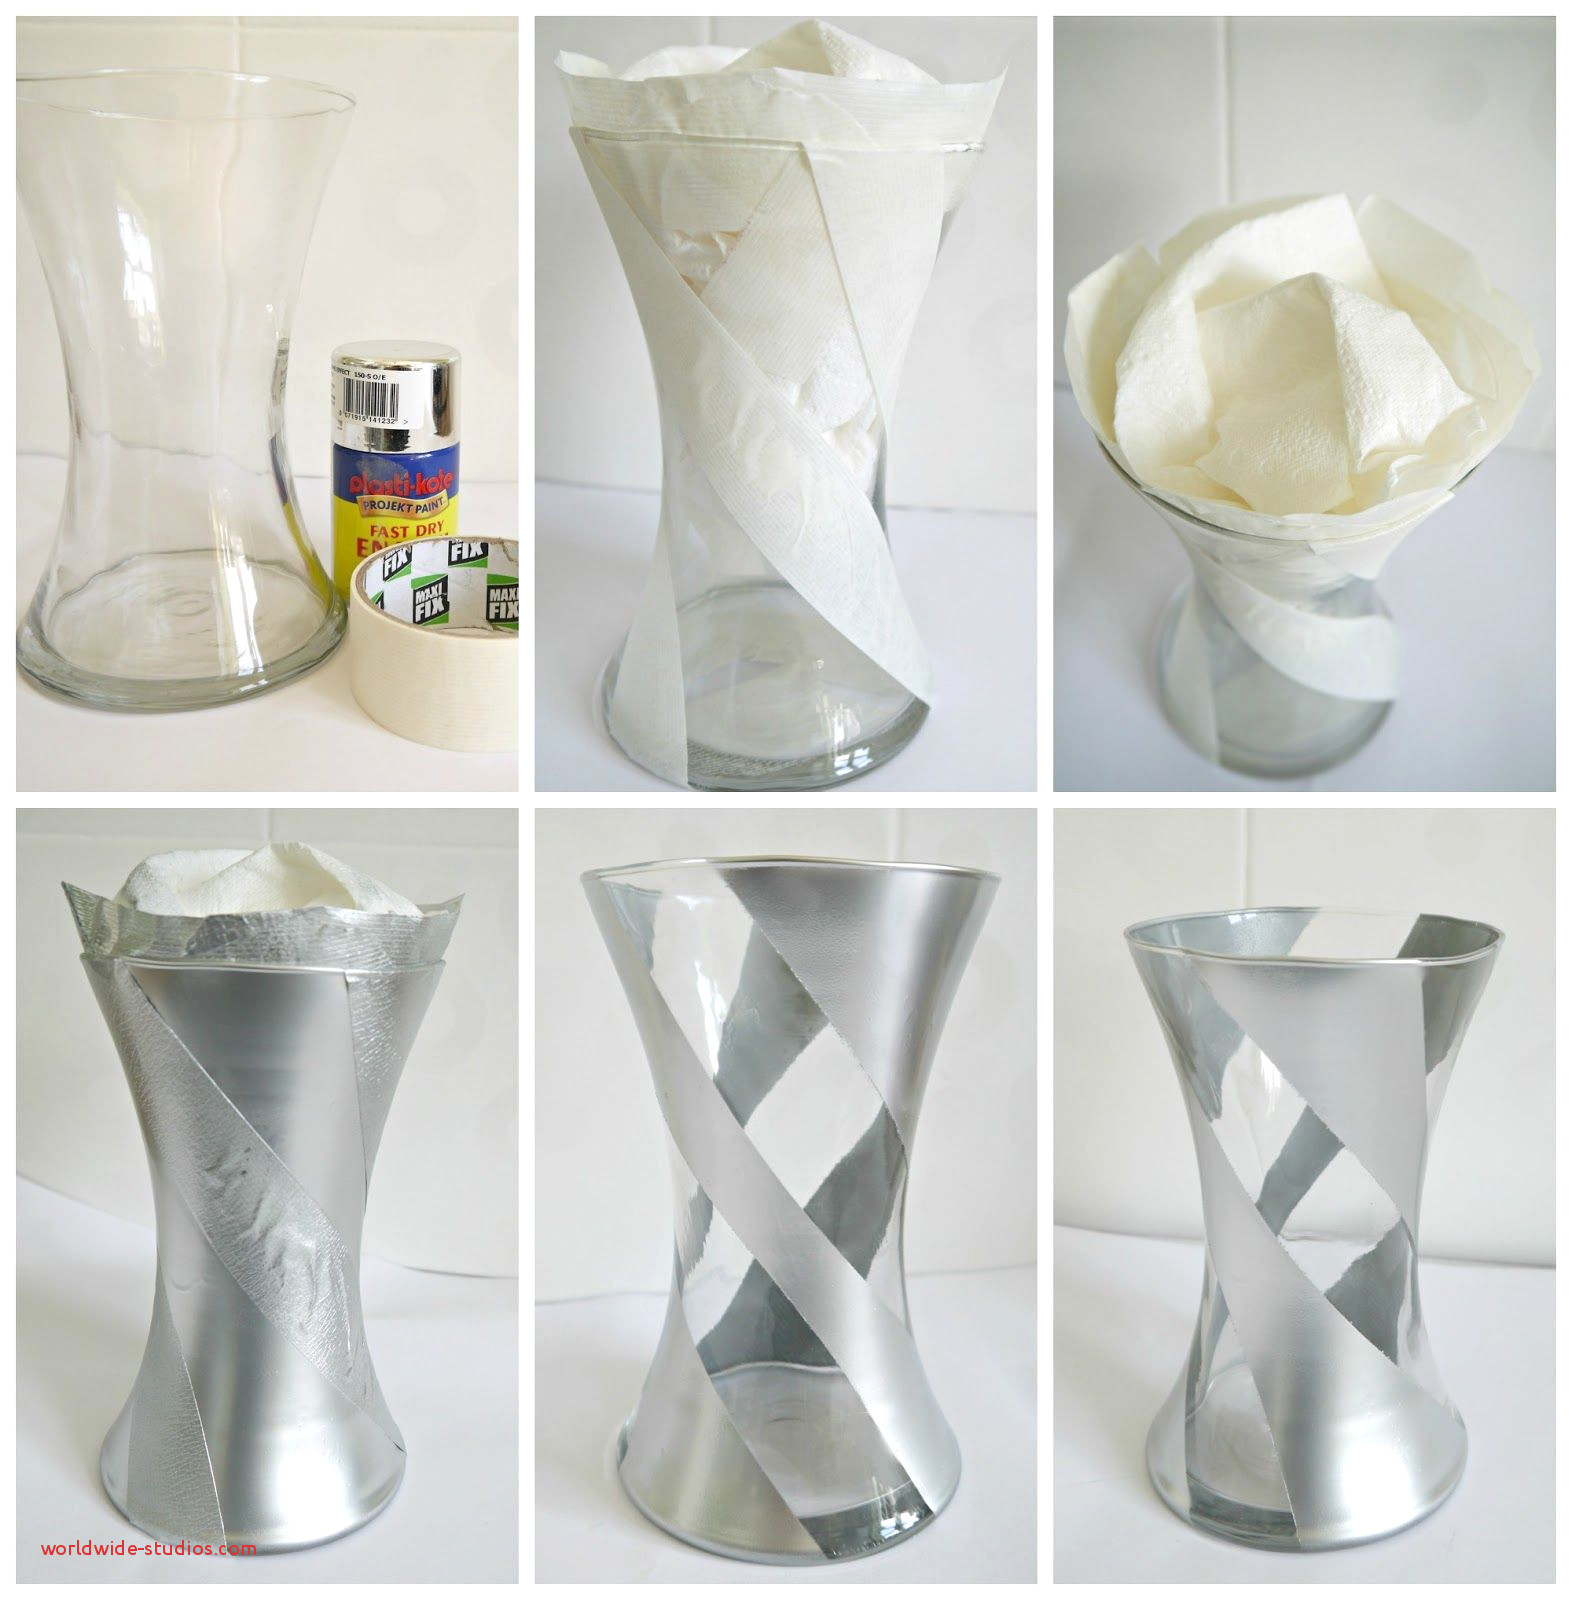 painting glass vases of top result diy paint on glass new diy painting glass vases creative inside top result diy paint on glass new diy painting glass vases creative vases pinterest spiral image